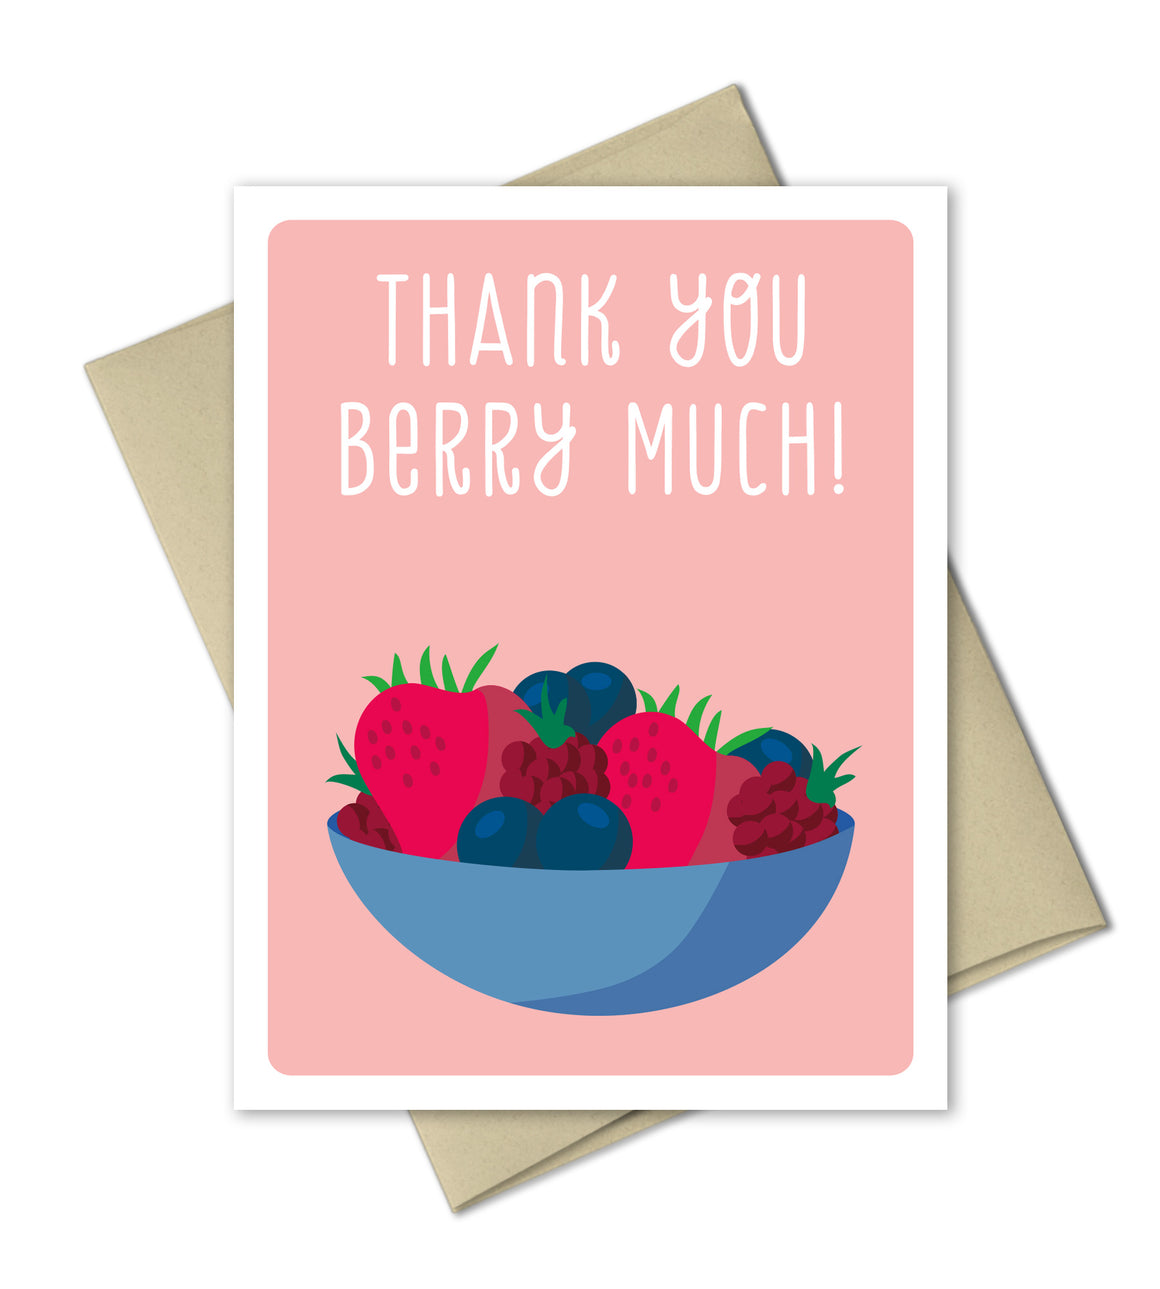 Thank You Card - Berry Much - The Imagination Spot